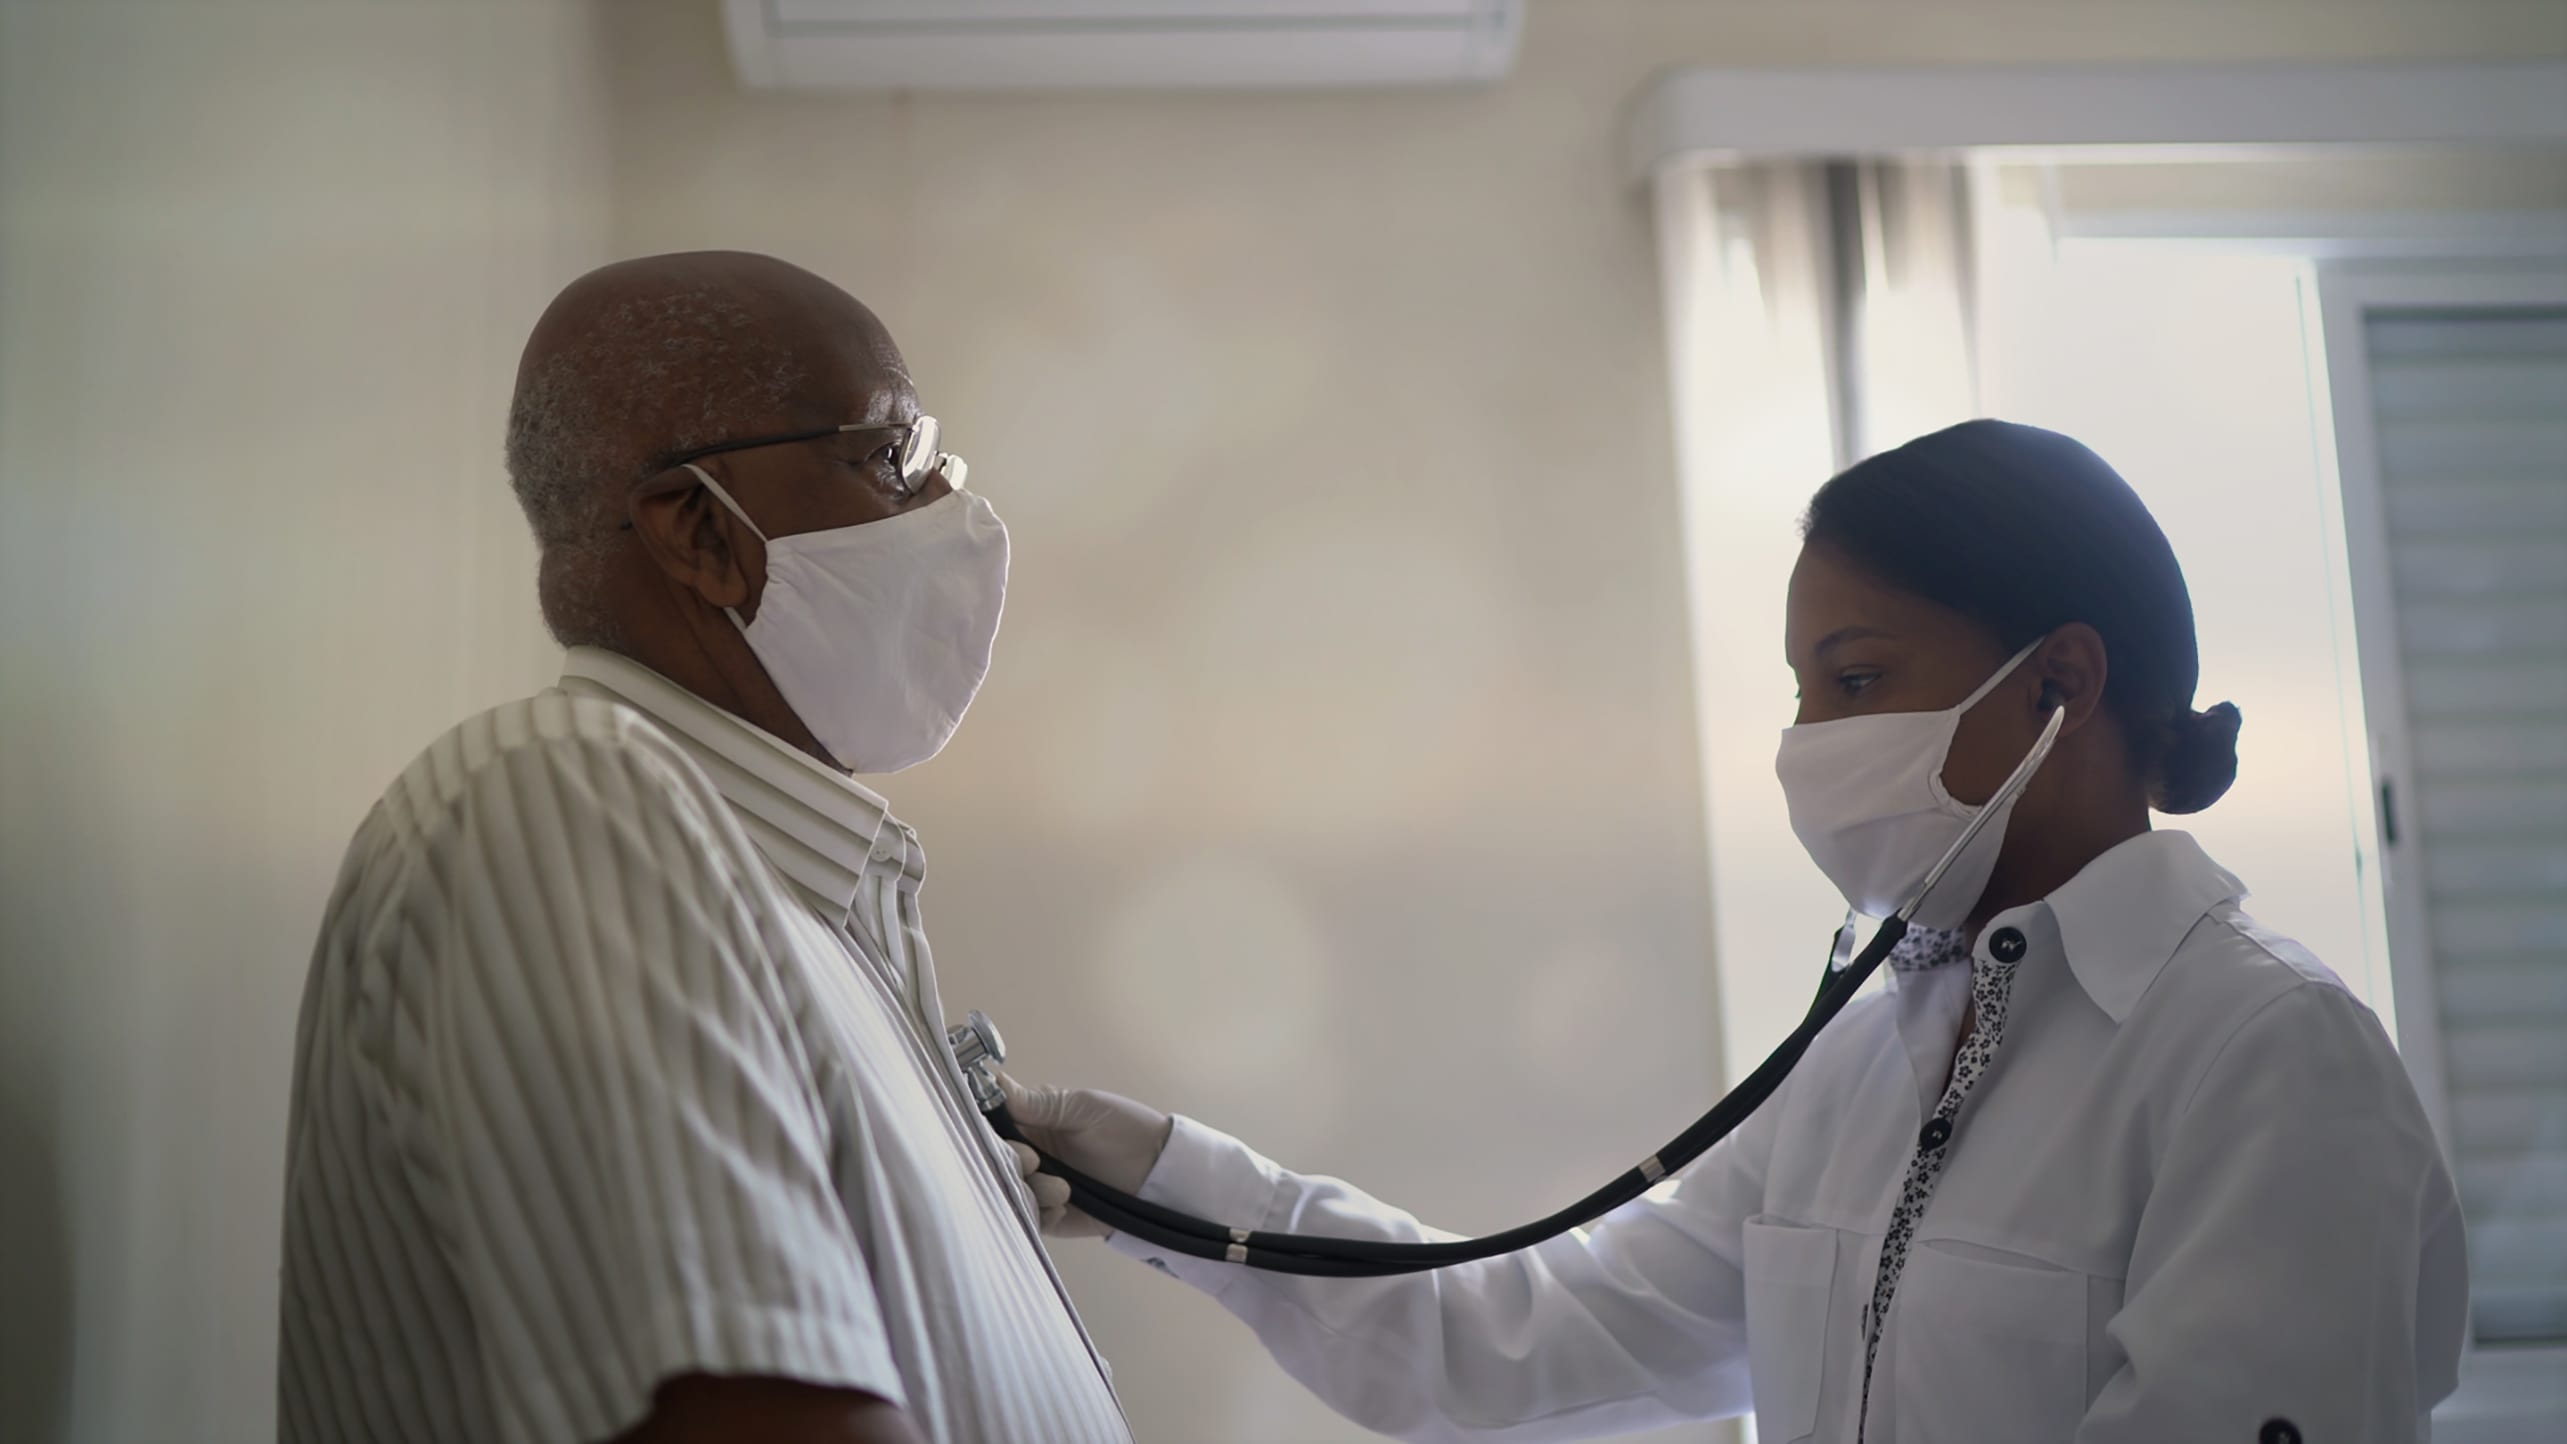 A masked doctor listens to a patient's heart.